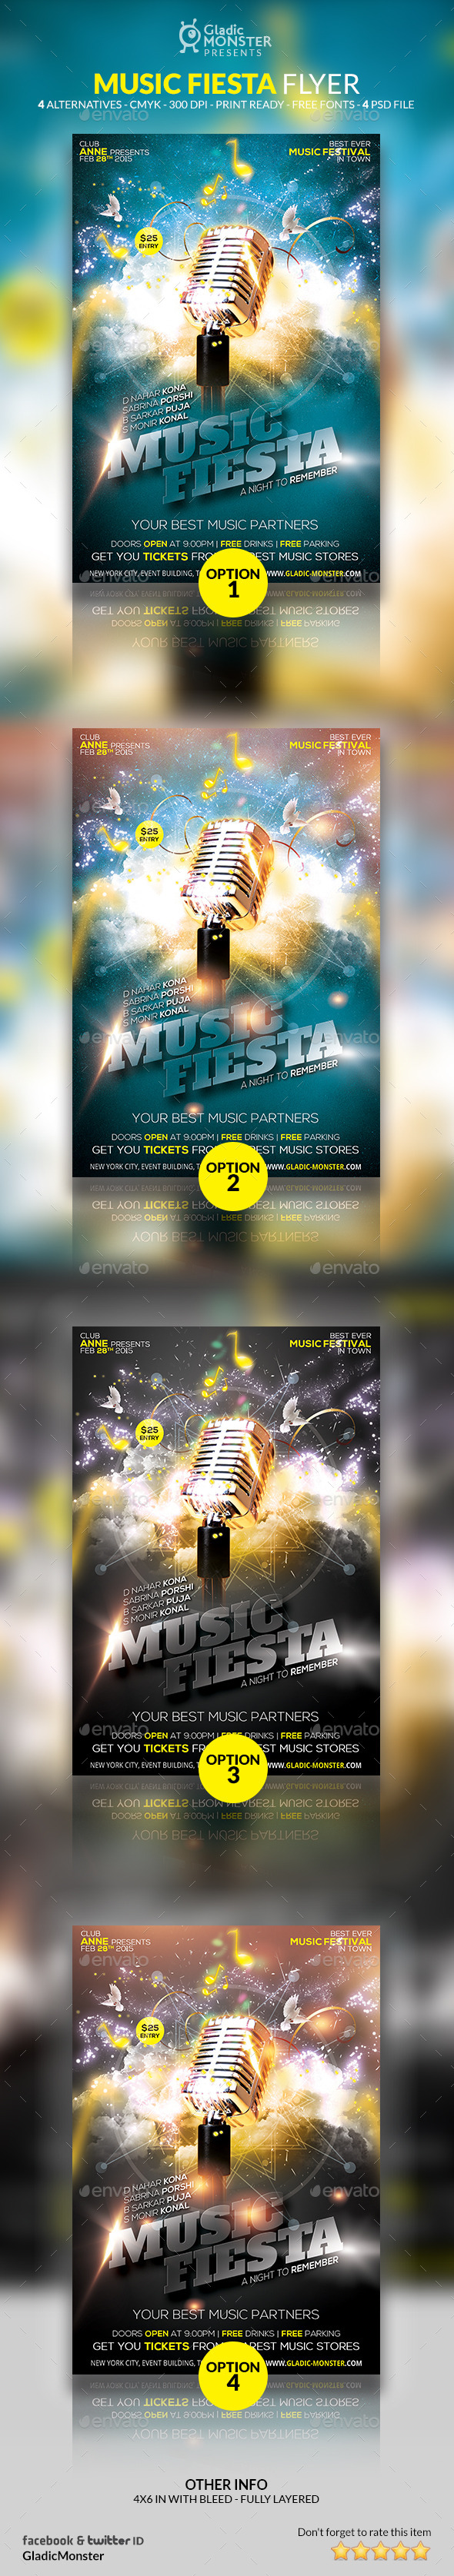 Music Fiesta - Events Flyers